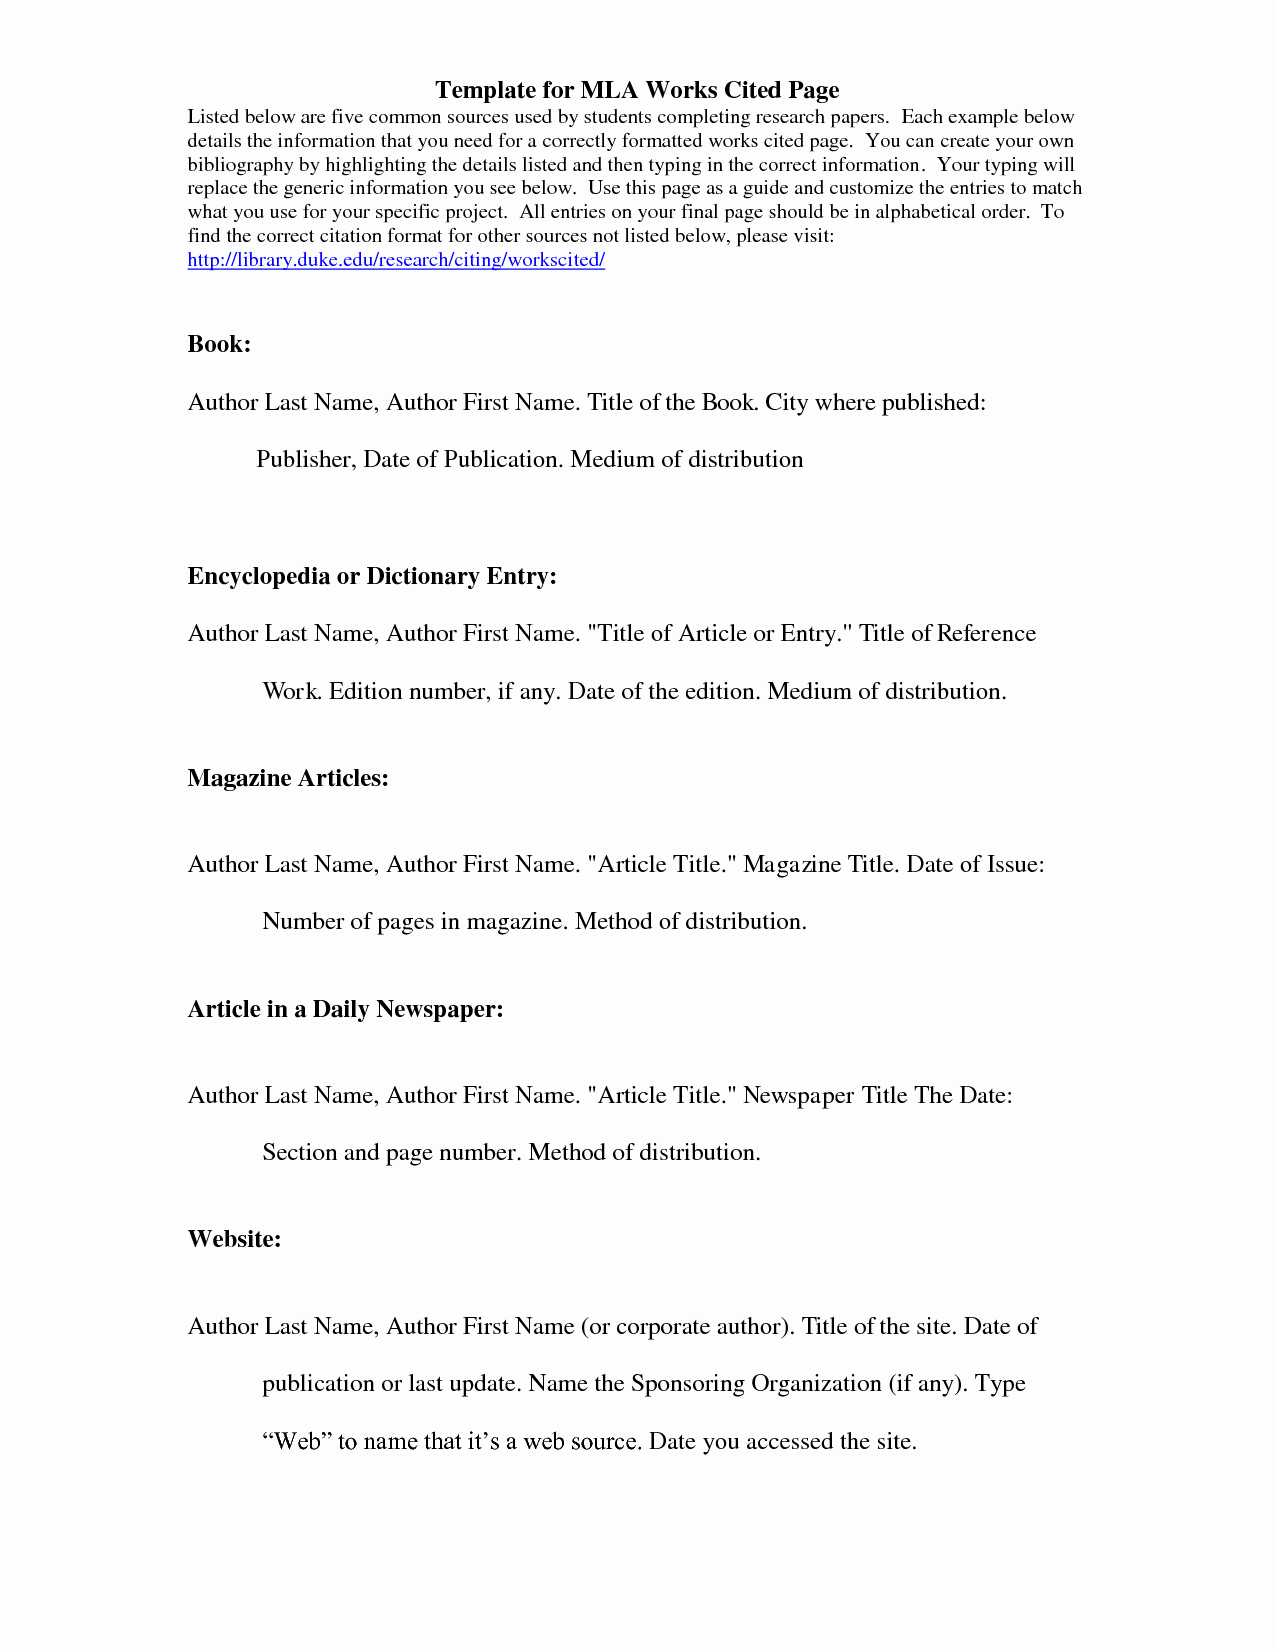 Mla Works Cited Page Template Luxury Mla Citation Template